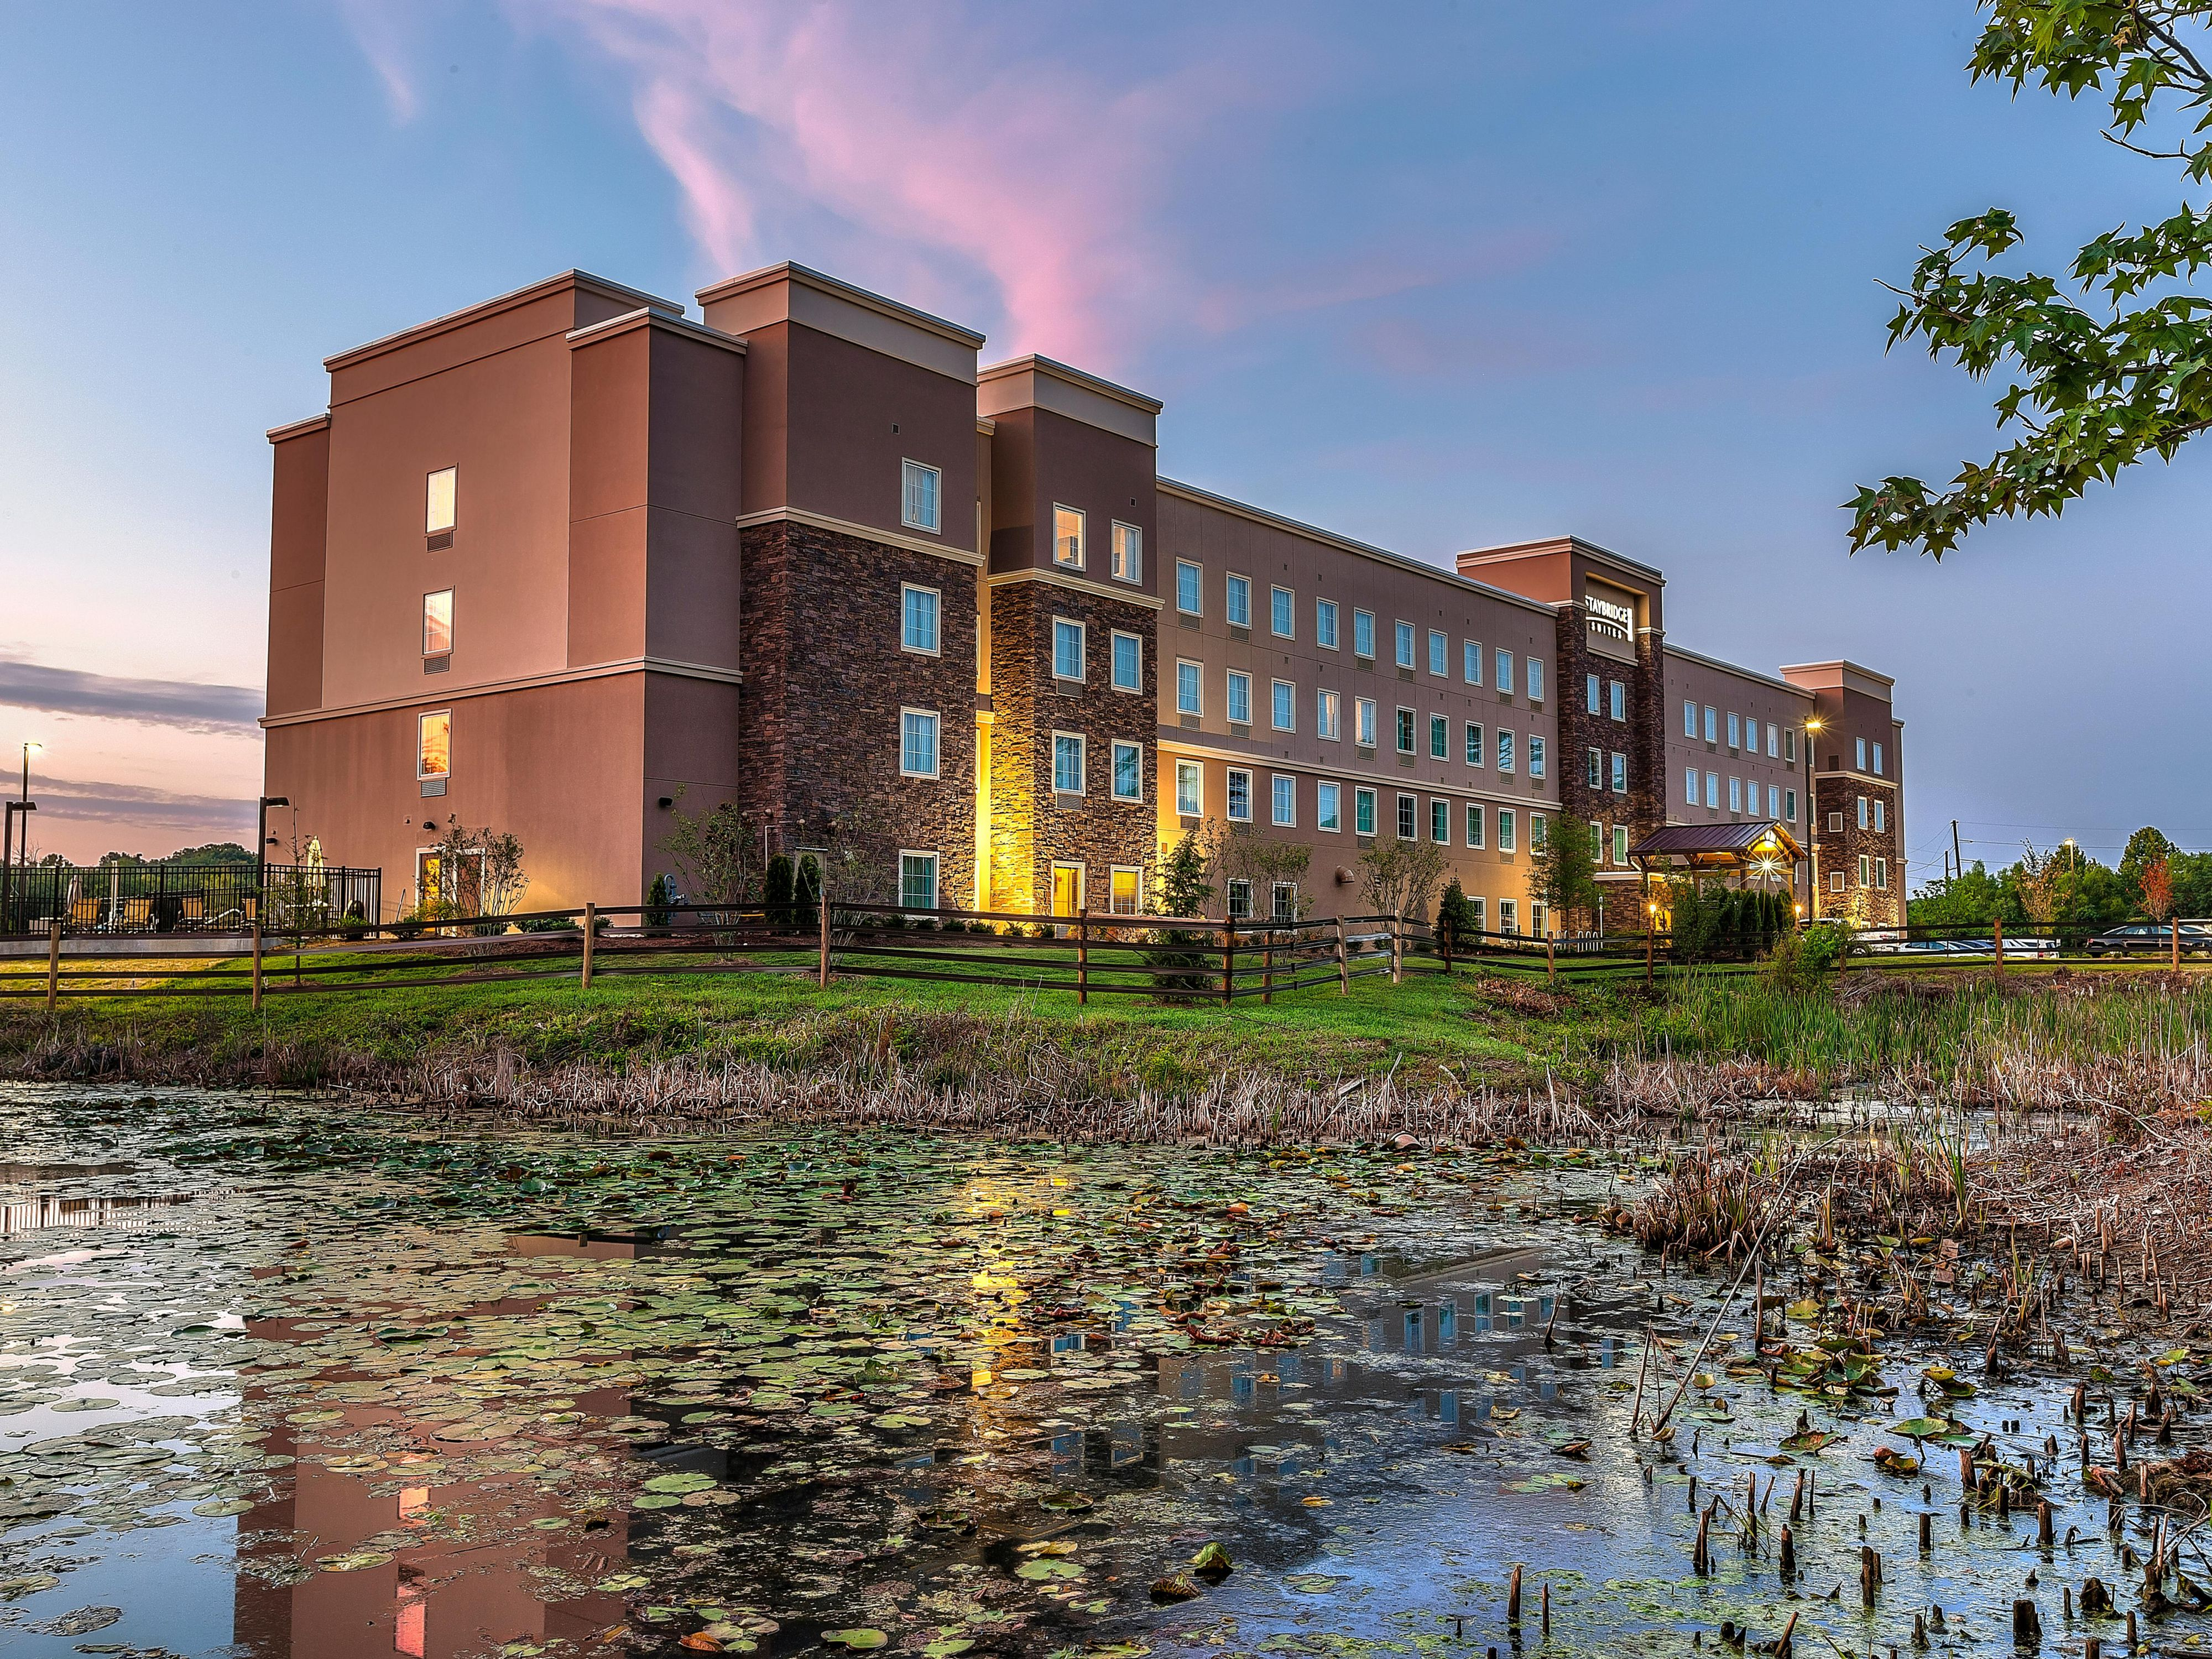 Knoxville Hotels Staybridge Suites KnoxvilleWest Extended Stay - Map 1213 us 40 west cambridge city in